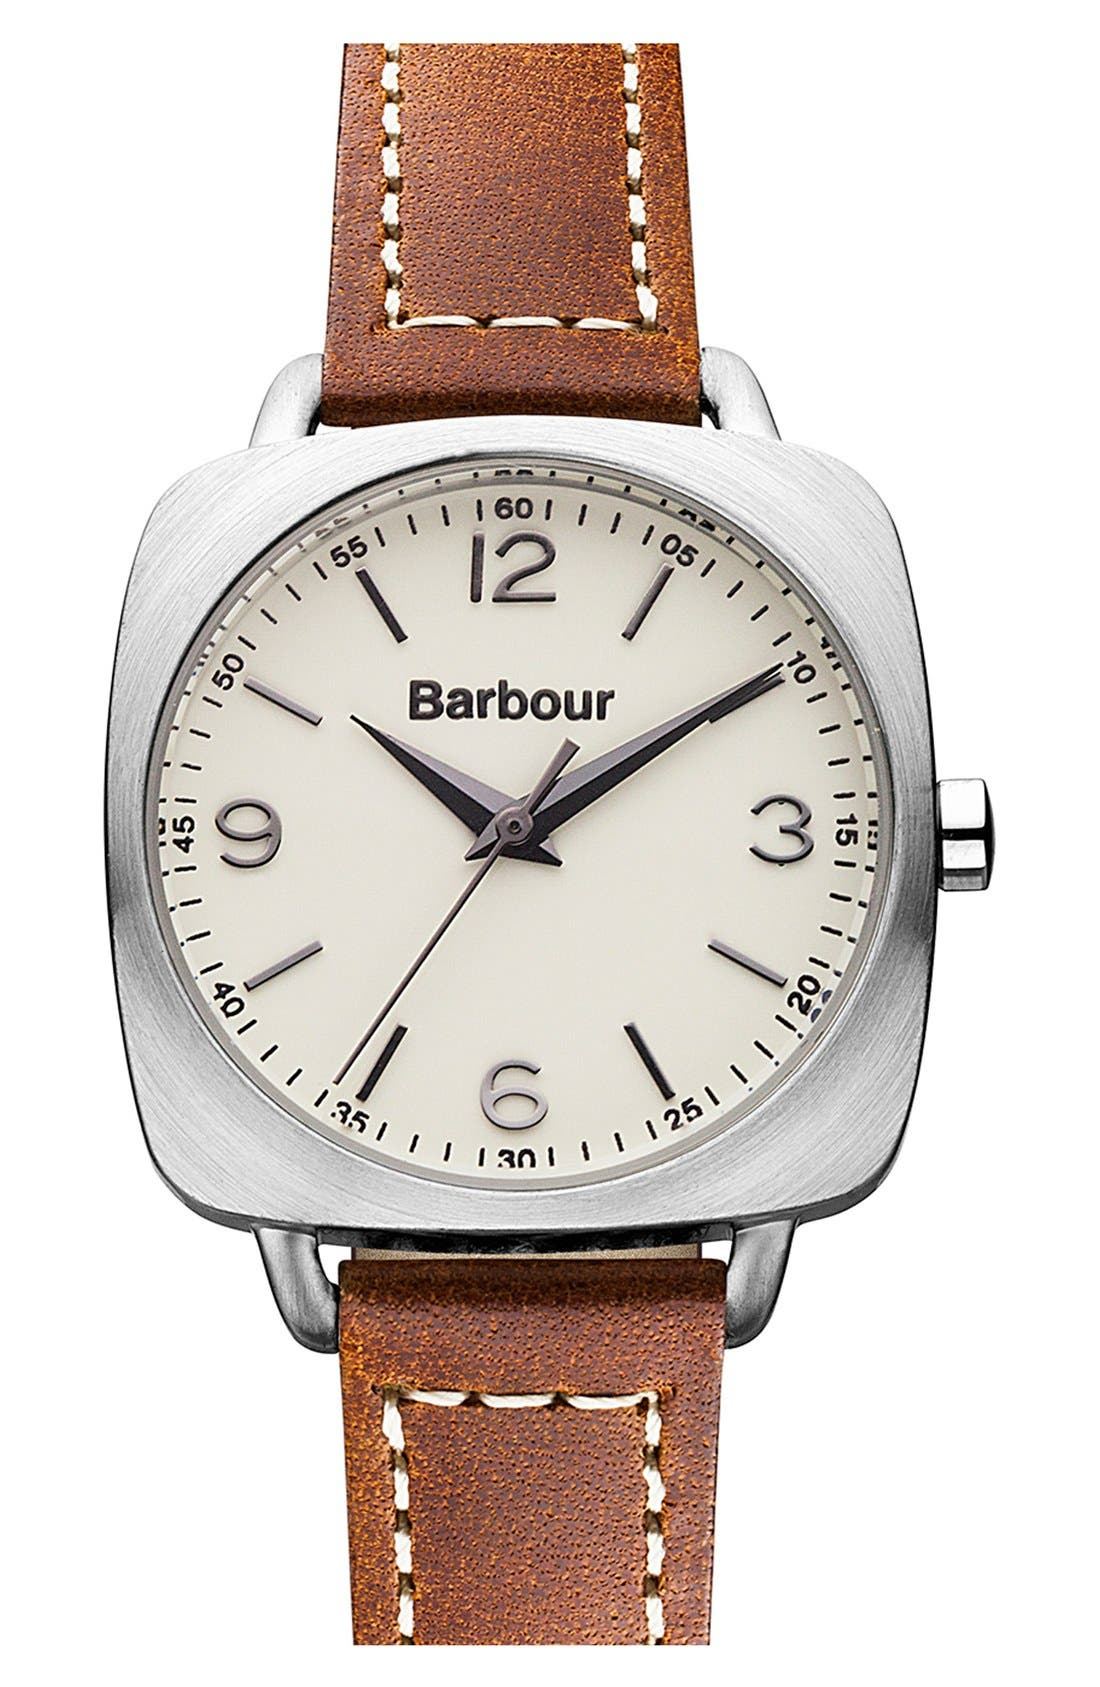 Main Image - Barbour 'Heritage' Strap Watch, 30mm x 30mm